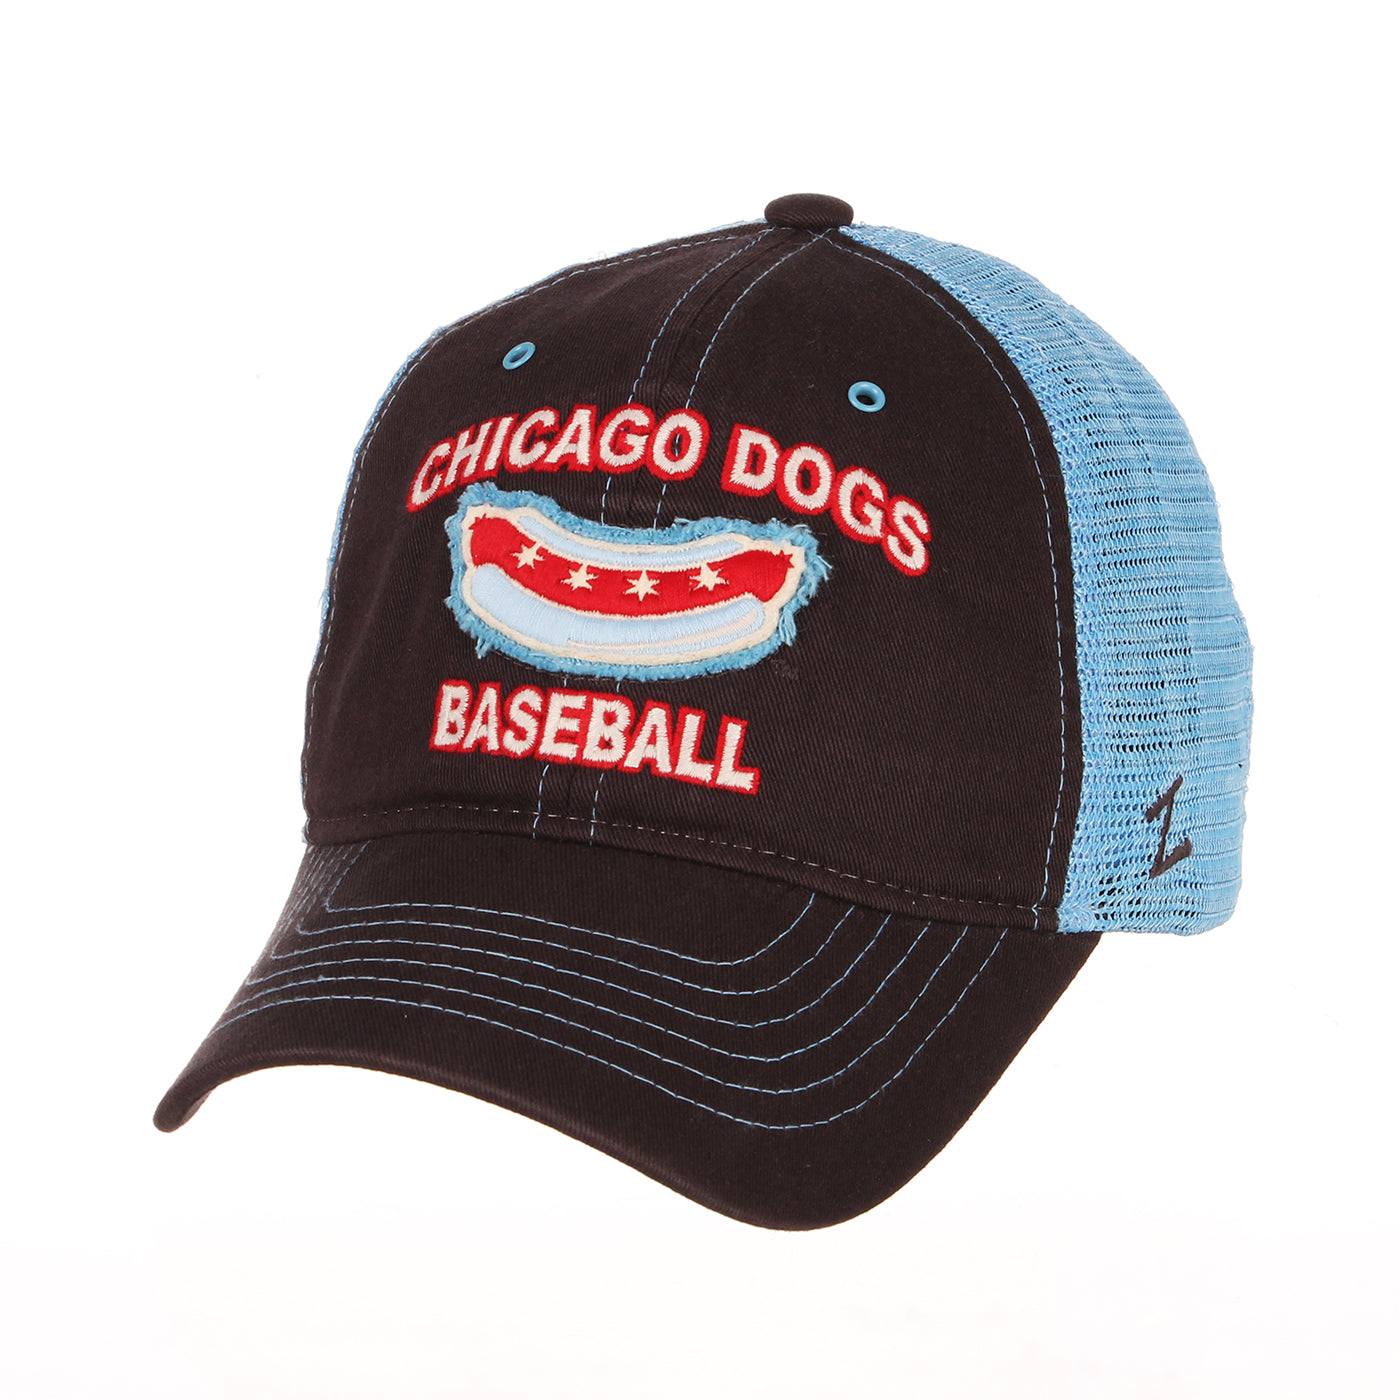 Chicago Dogs Zephyr Scholarship Adjustable Slouch Mesh Hat - Black/Blue